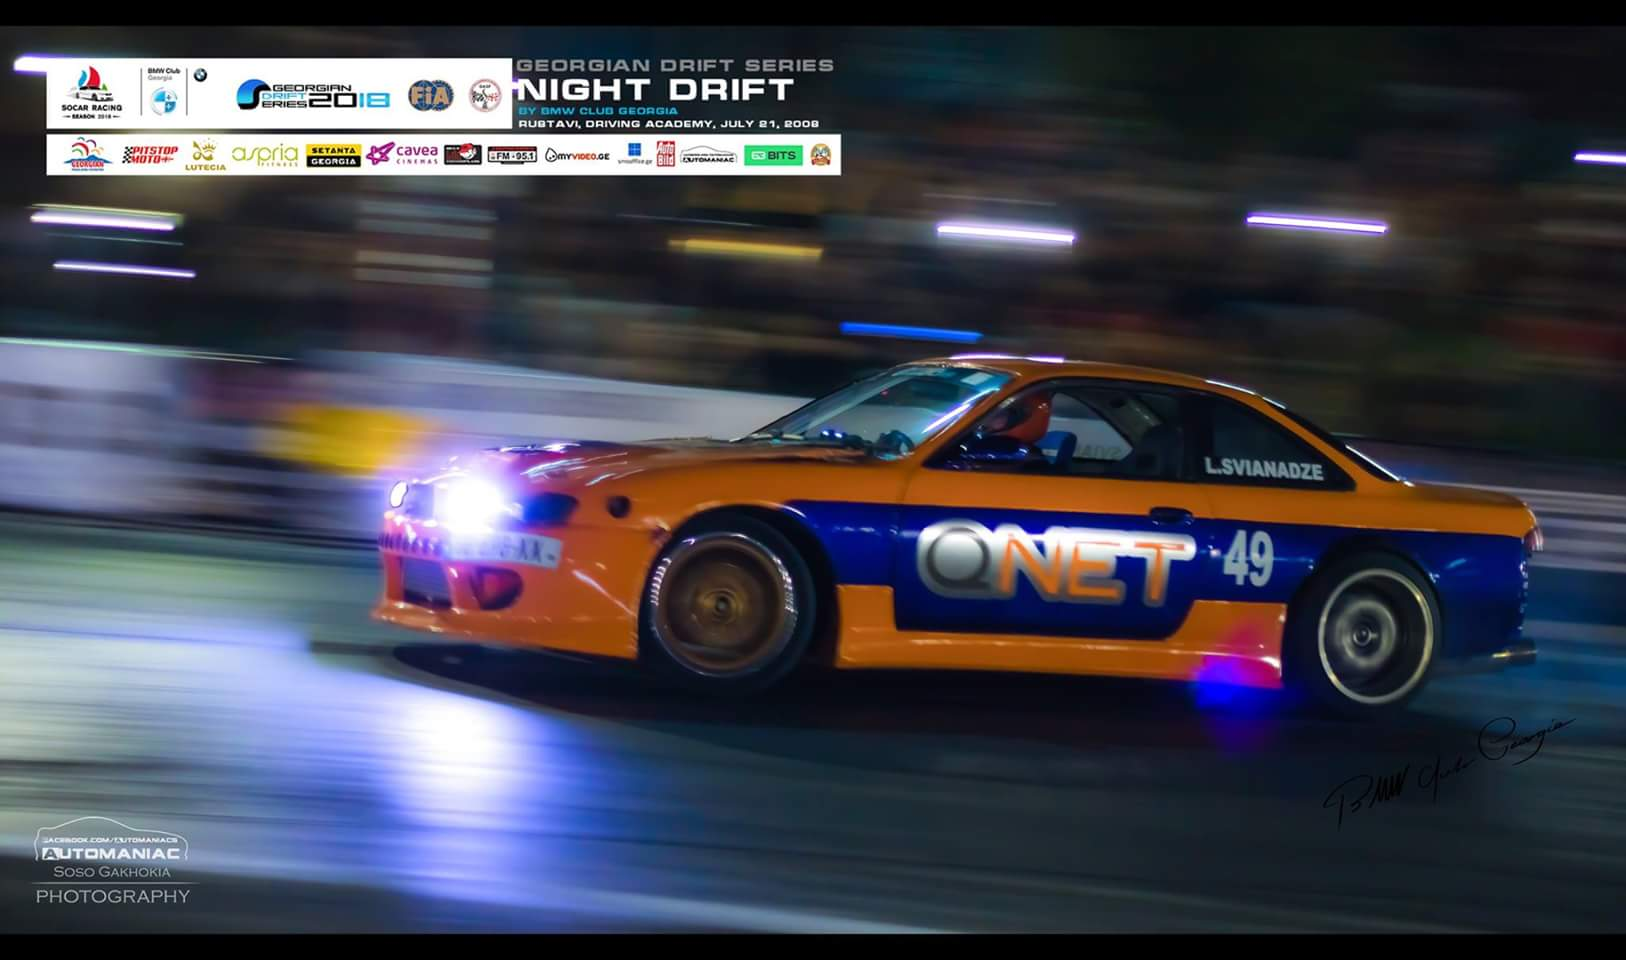 Image of QNET sponsored car at the Georgian Drift Series Championship